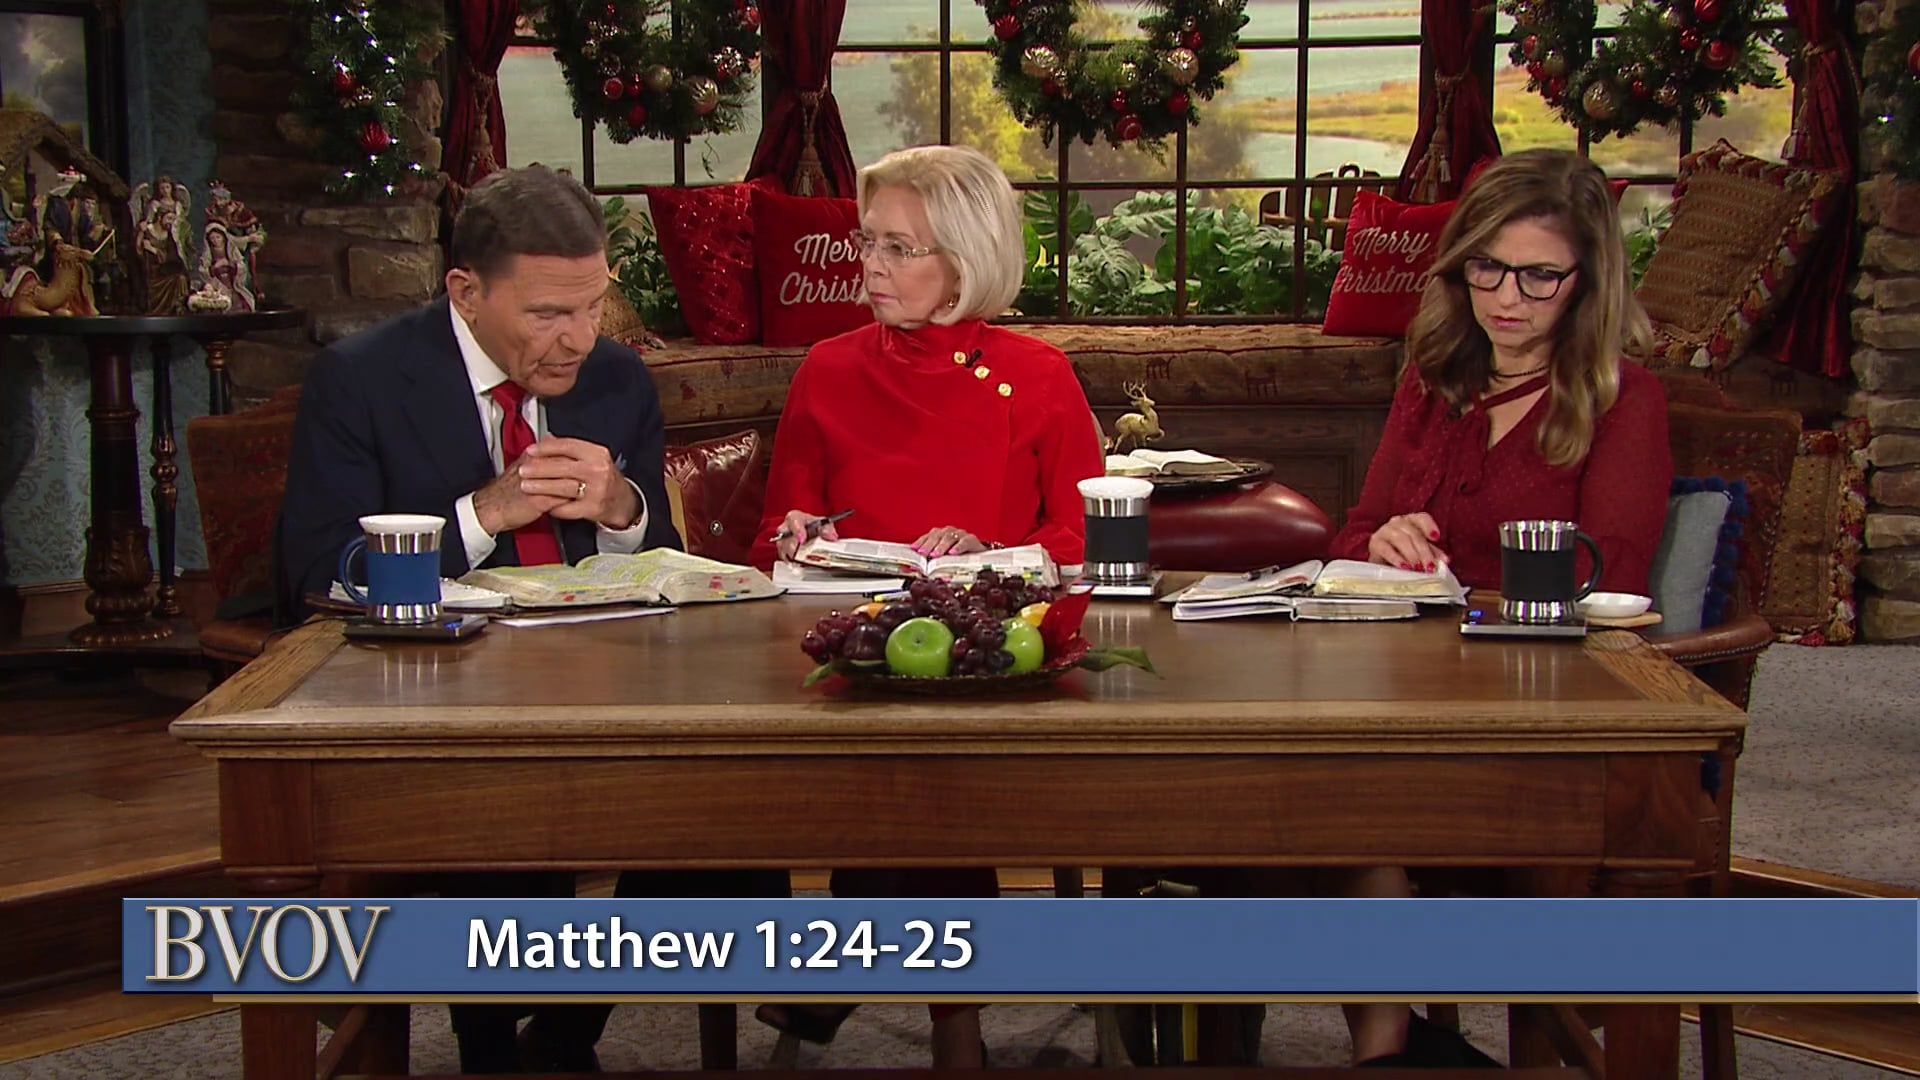 Join Kenneth and Gloria Copeland with Kellie Copeland on Believer's Voice of Victory as they discuss the accuracy and uncanny timing of God at Christmas. Learn why the timely and supernatural actions of the wise men and Joseph, all working together, were required to see God's plan come to pass. Discover how every tiny piece of the puzzle was exactly right and right on time!